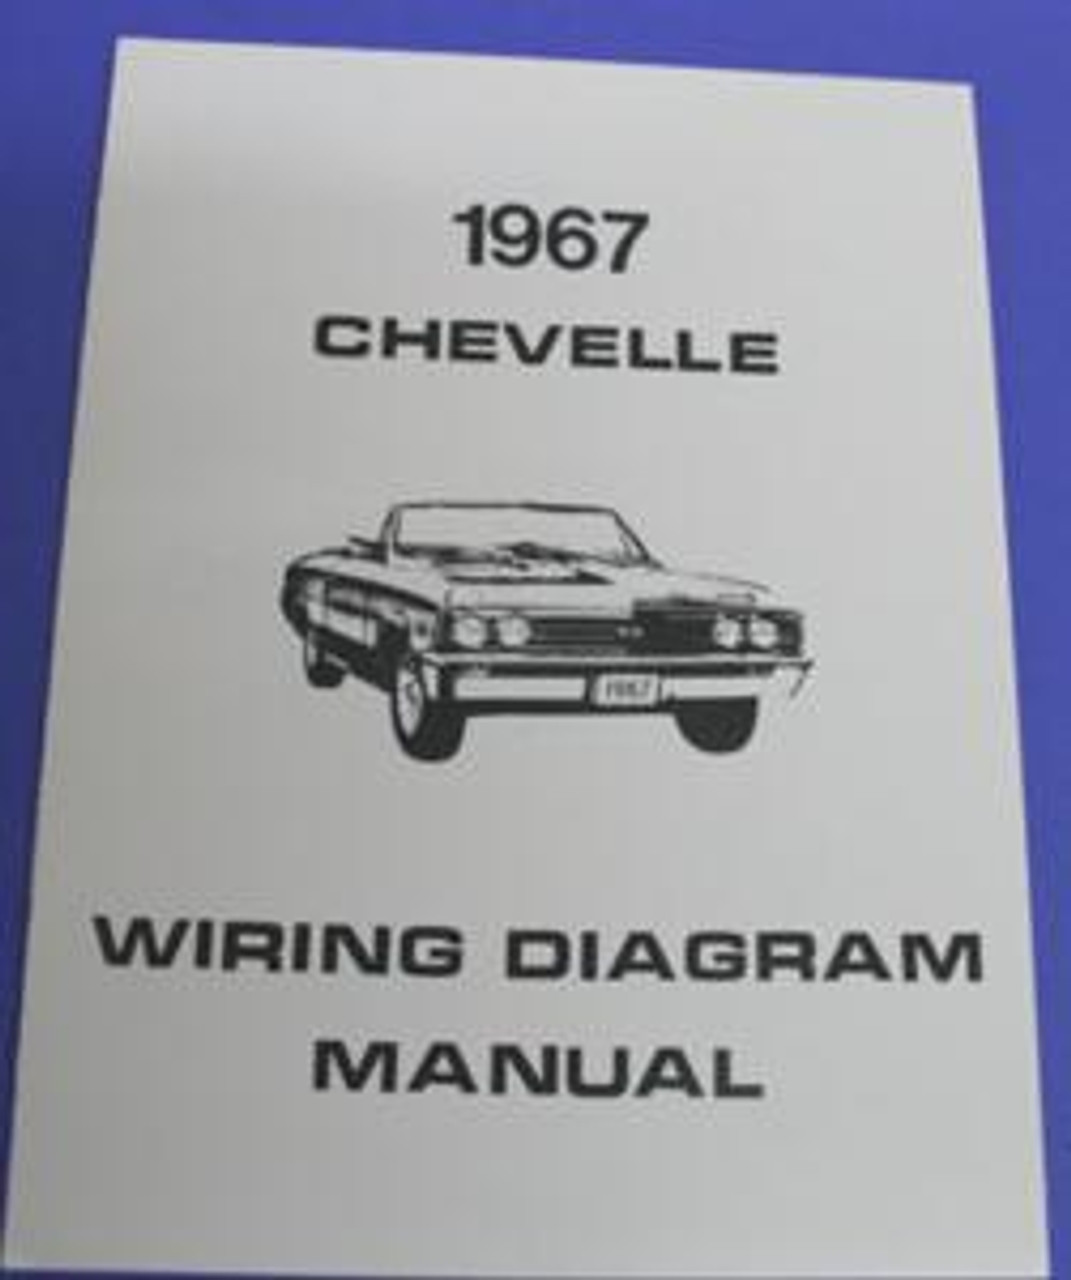 1967 Wiring Diagram - Ausley's Chevelle PartsAusley's Chevelle Parts